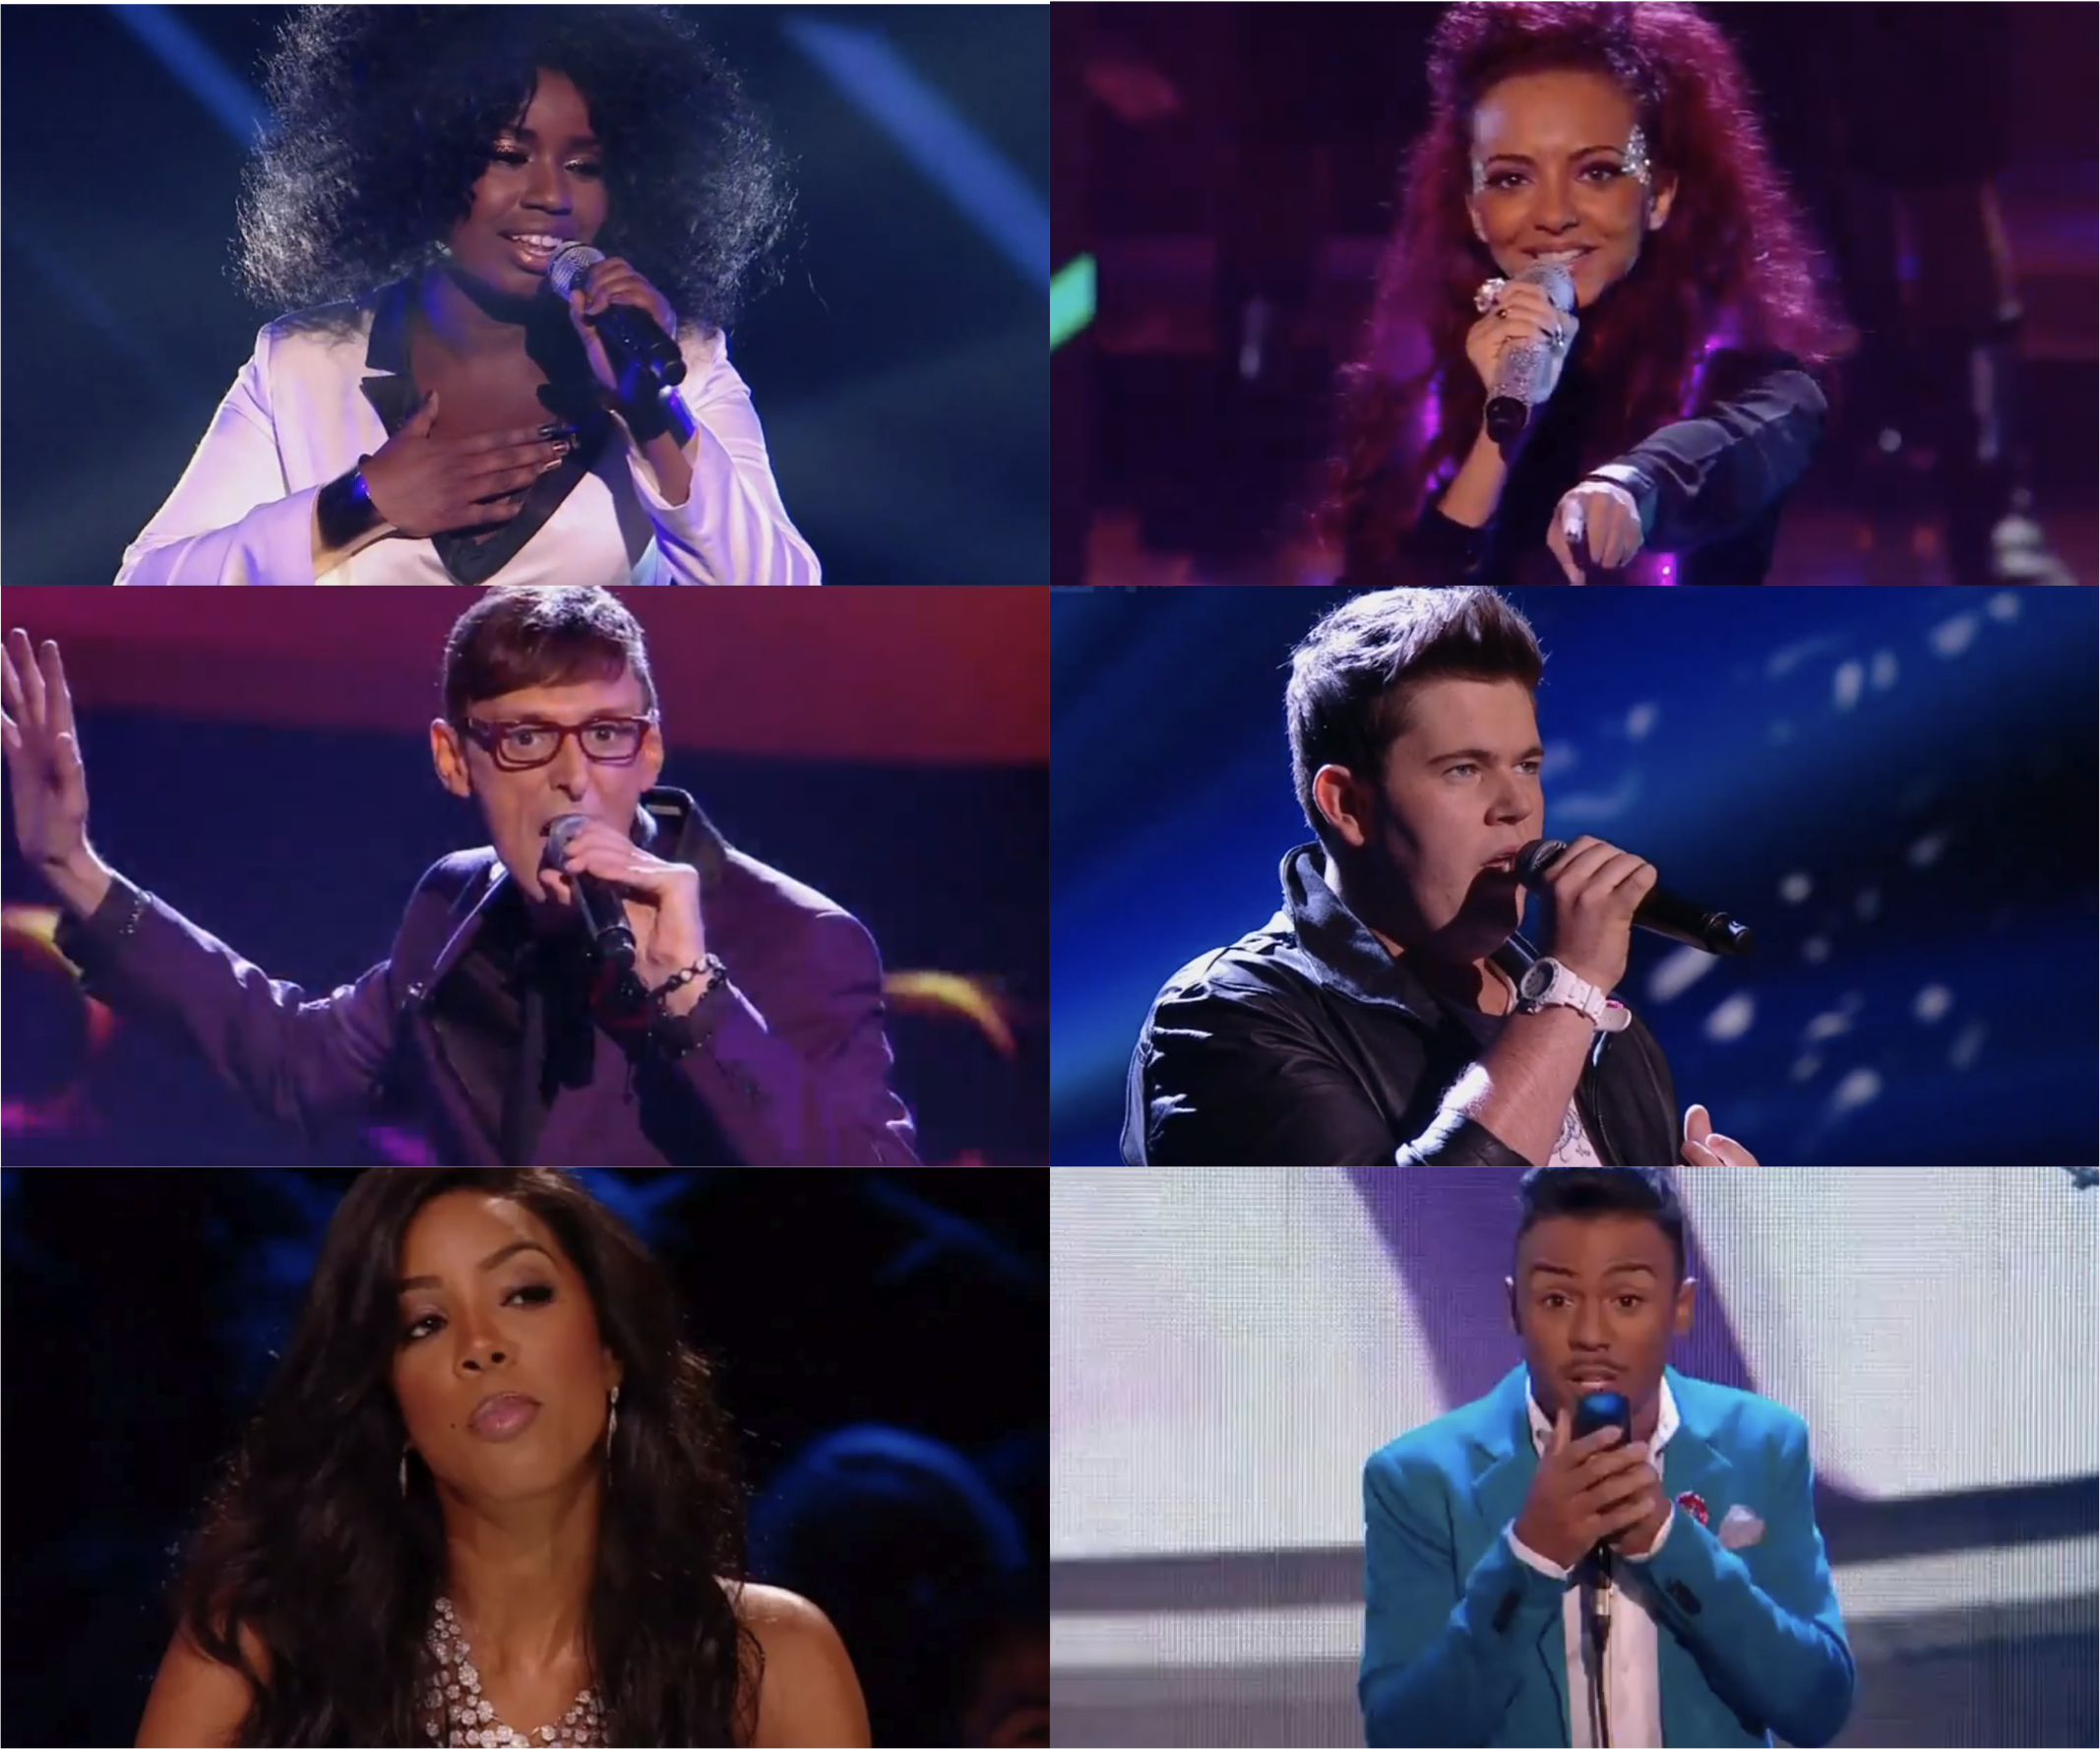 Ashley williams x factor eliminated click for details ashley williams